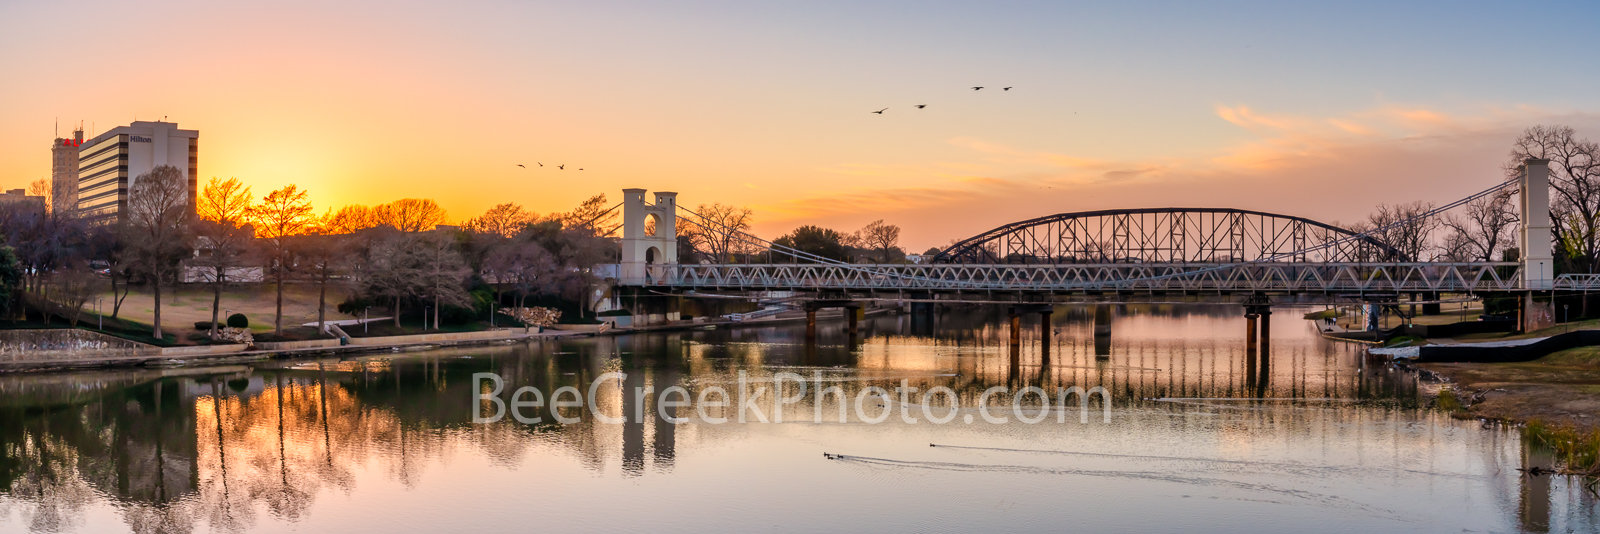 Waco Suspension Bridge Sunset Pano - This is the Waco supension bridge which is a 152 year old bridge as we captured it at sunset...